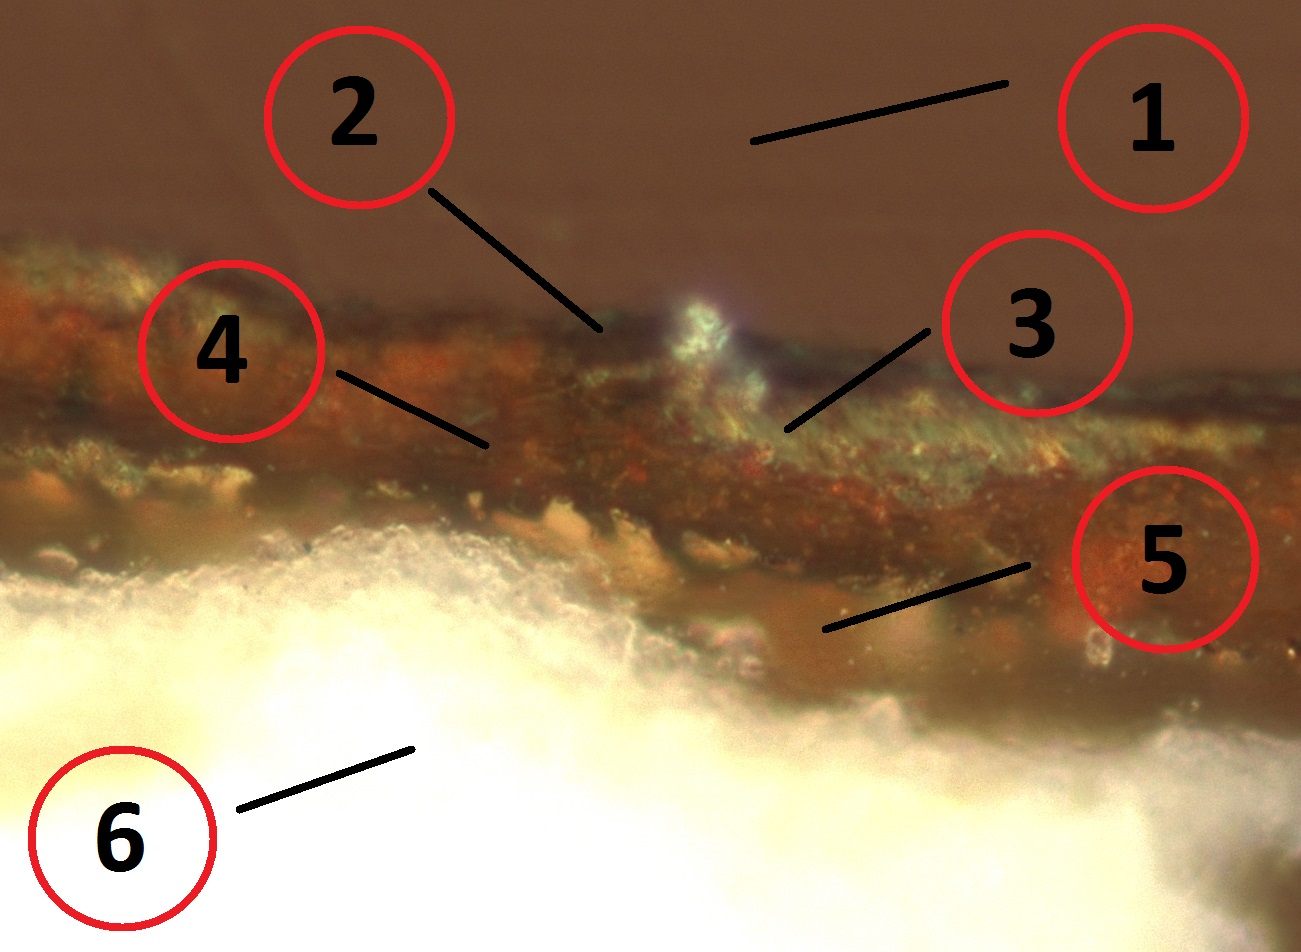 fig 8. Six layers are visible on the crosscut: 1. rezin with a sample inside 2. thin dark layer, probably dirt 3.-4. dark amber colour layer with metal powder shining golden 5. transparent grounding, possibly linseed oil 6. gypsum